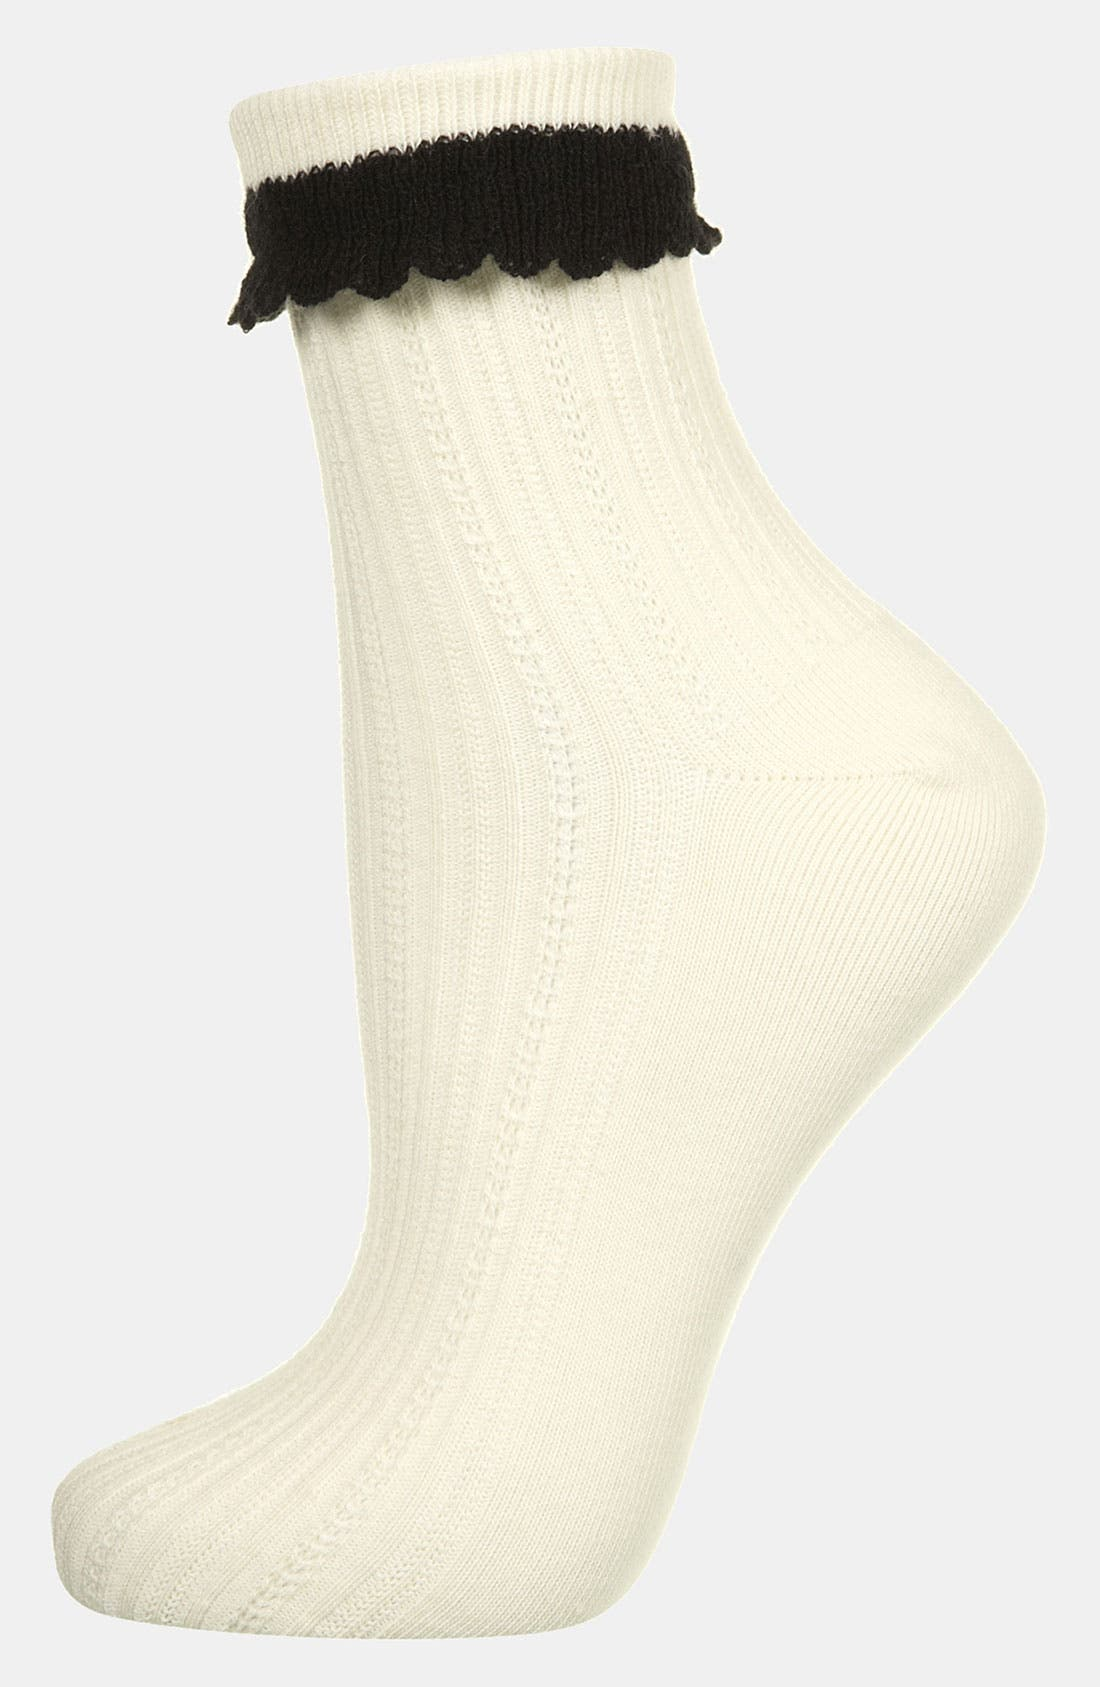 Alternate Image 1 Selected - Topshop Crochet Trim Ankle Socks